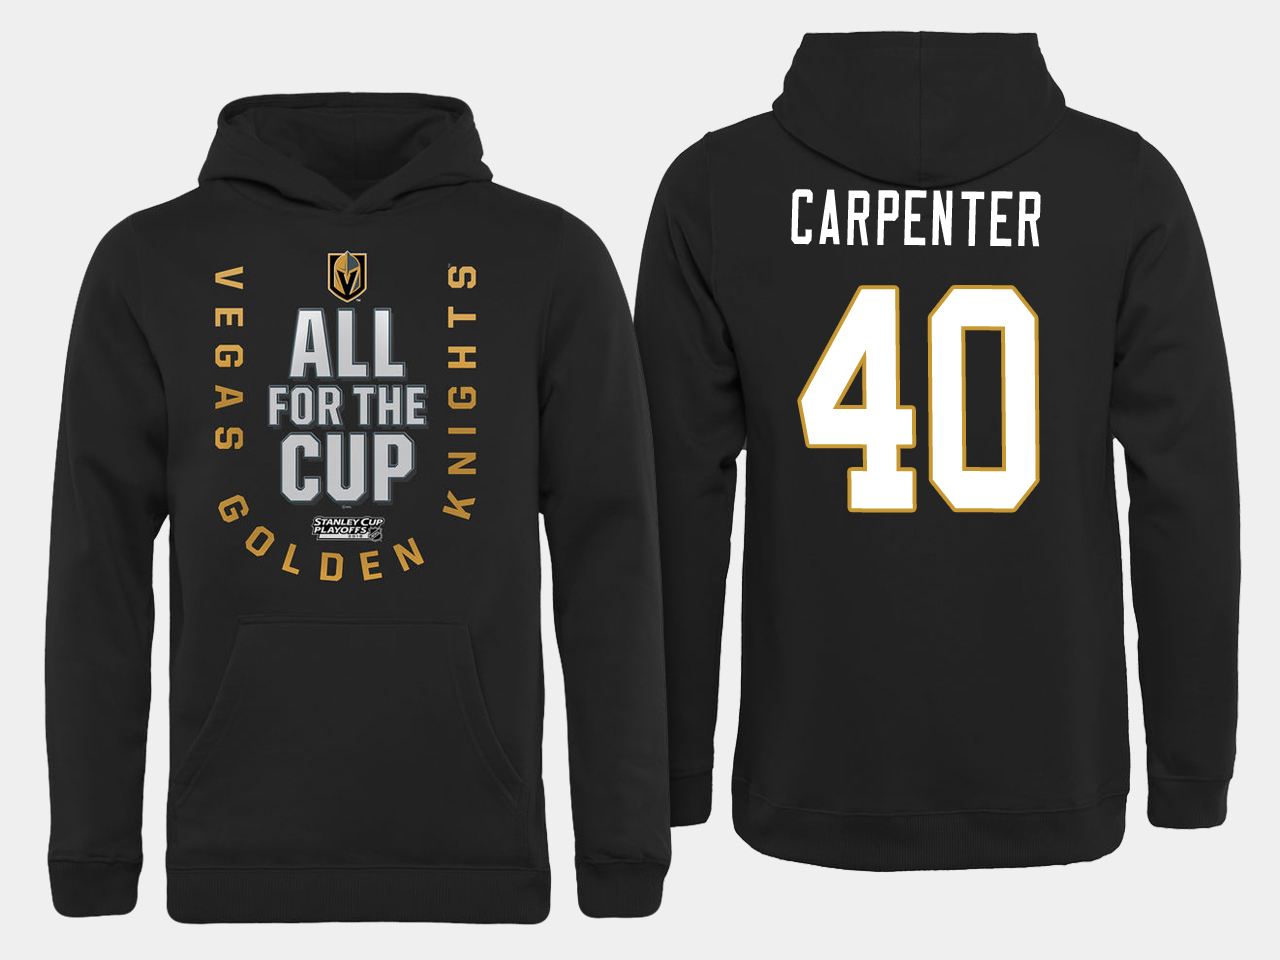 Men NHL Vegas Golden Knights 40 Carpenter All for the Cup hoodie